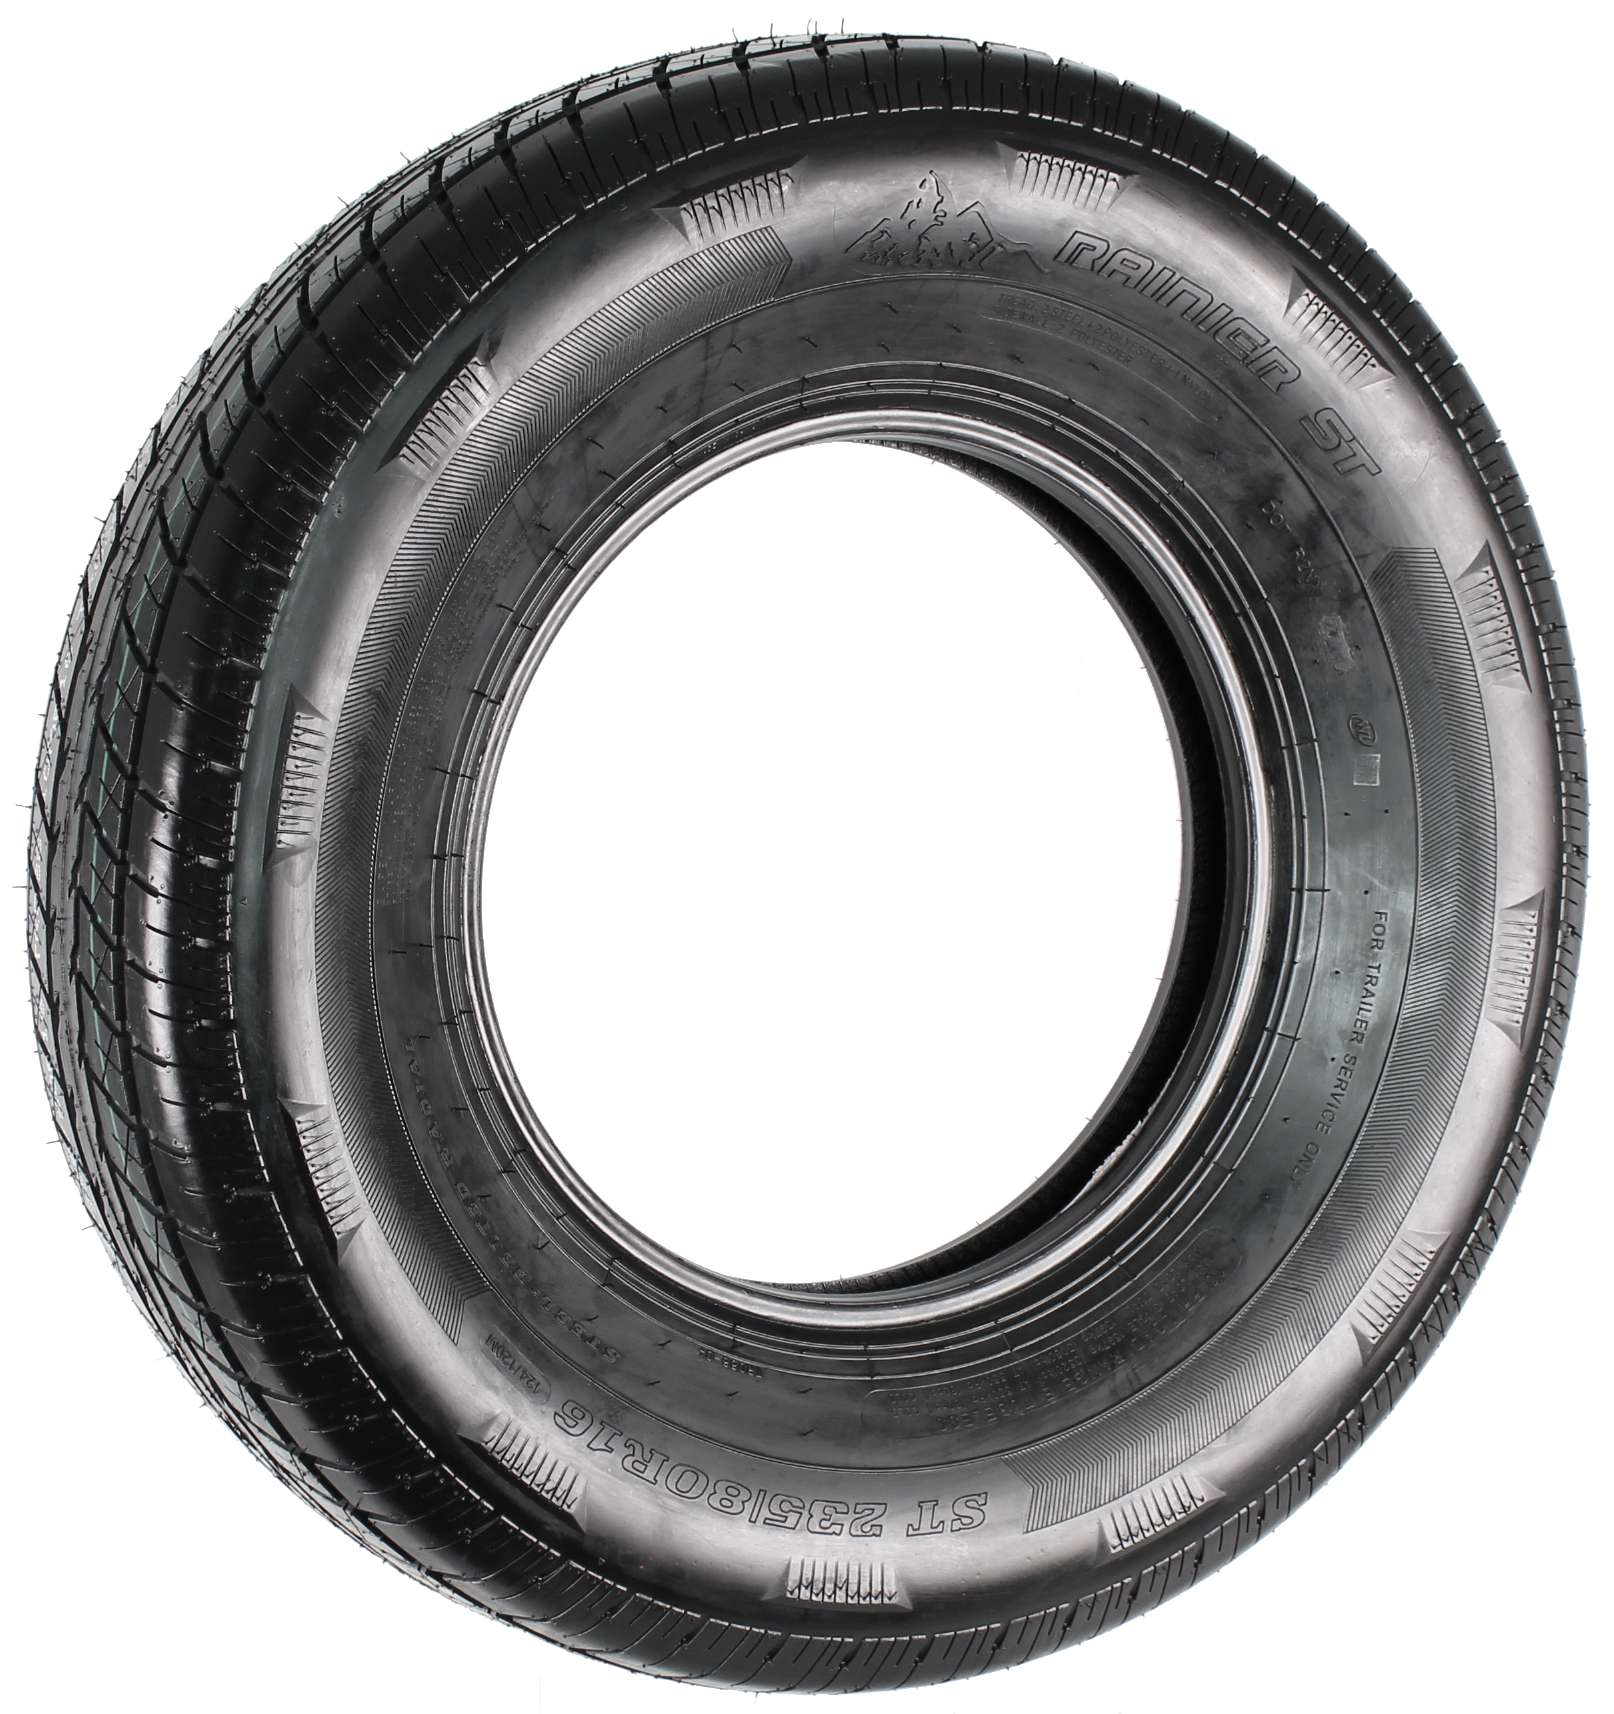 Rainier ST235/80R16 LRF 12-Ply Radial Trailer Tire Image